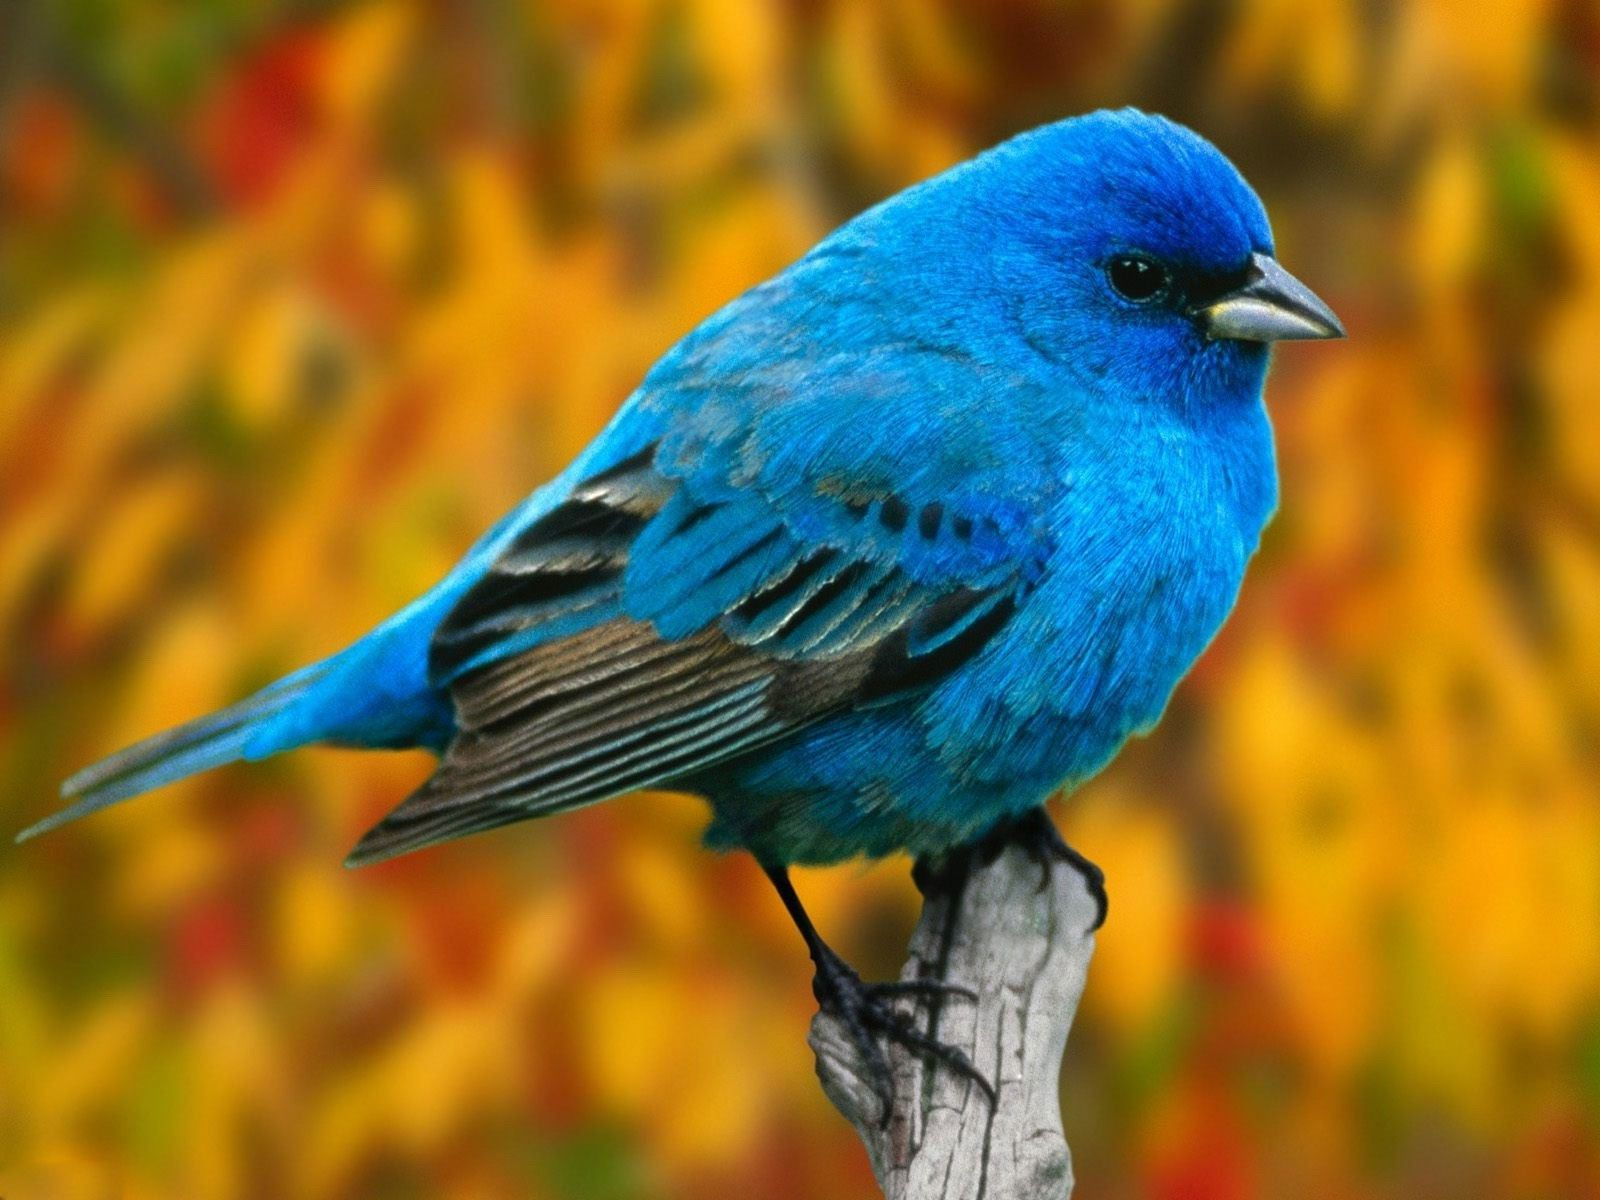 Hd wallpaper android - Free Bird Mobile Hd Wallpaper